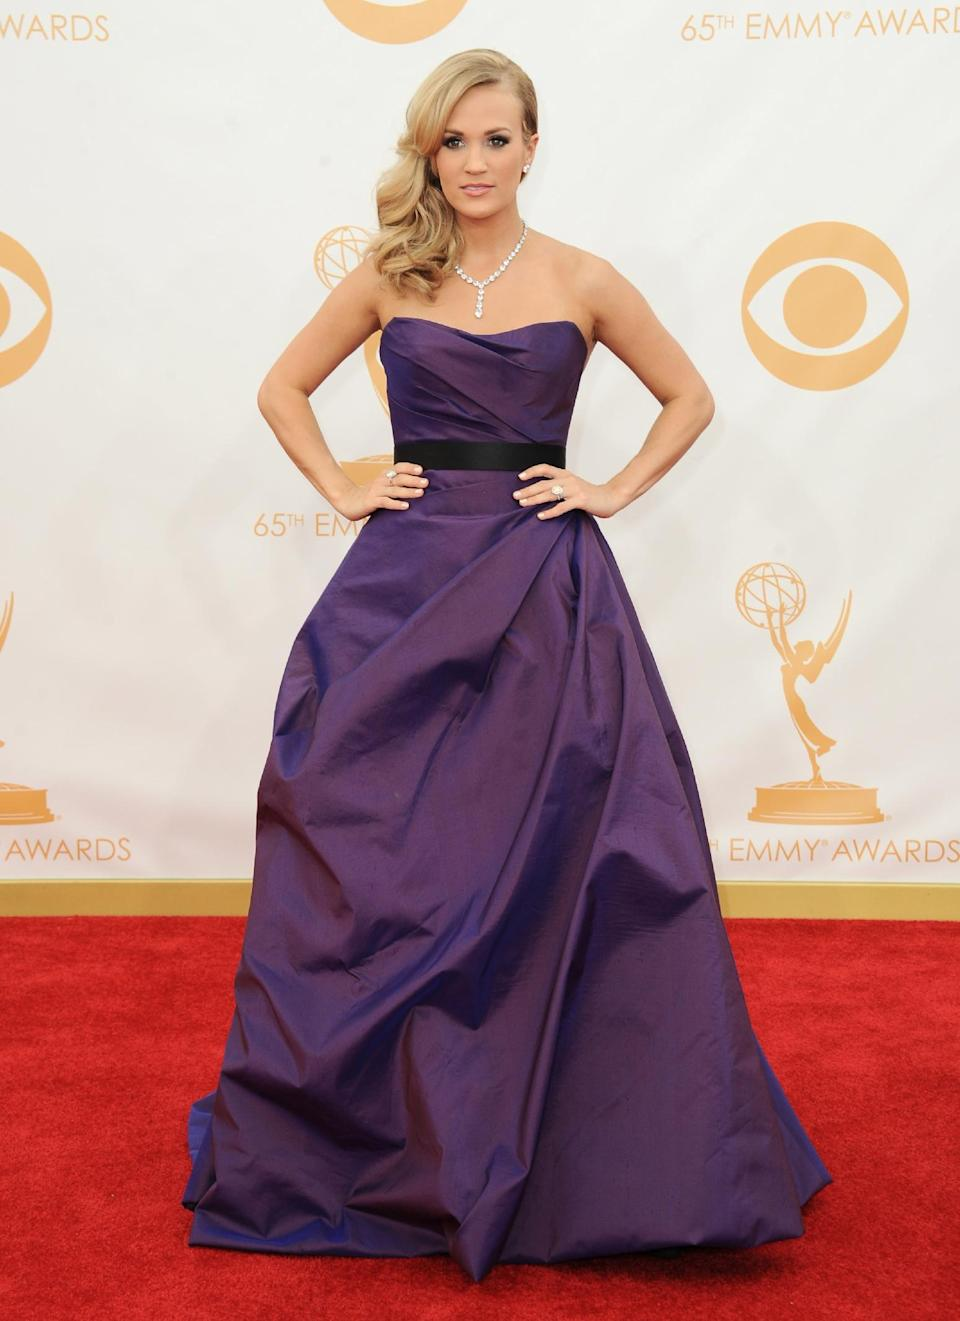 Carrie Underwood, wearing Romona Keveza, arrives at the 65th Primetime Emmy Awards at Nokia Theatre on Sunday Sept. 22, 2013, in Los Angeles. (Photo by Jordan Strauss/Invision/AP)